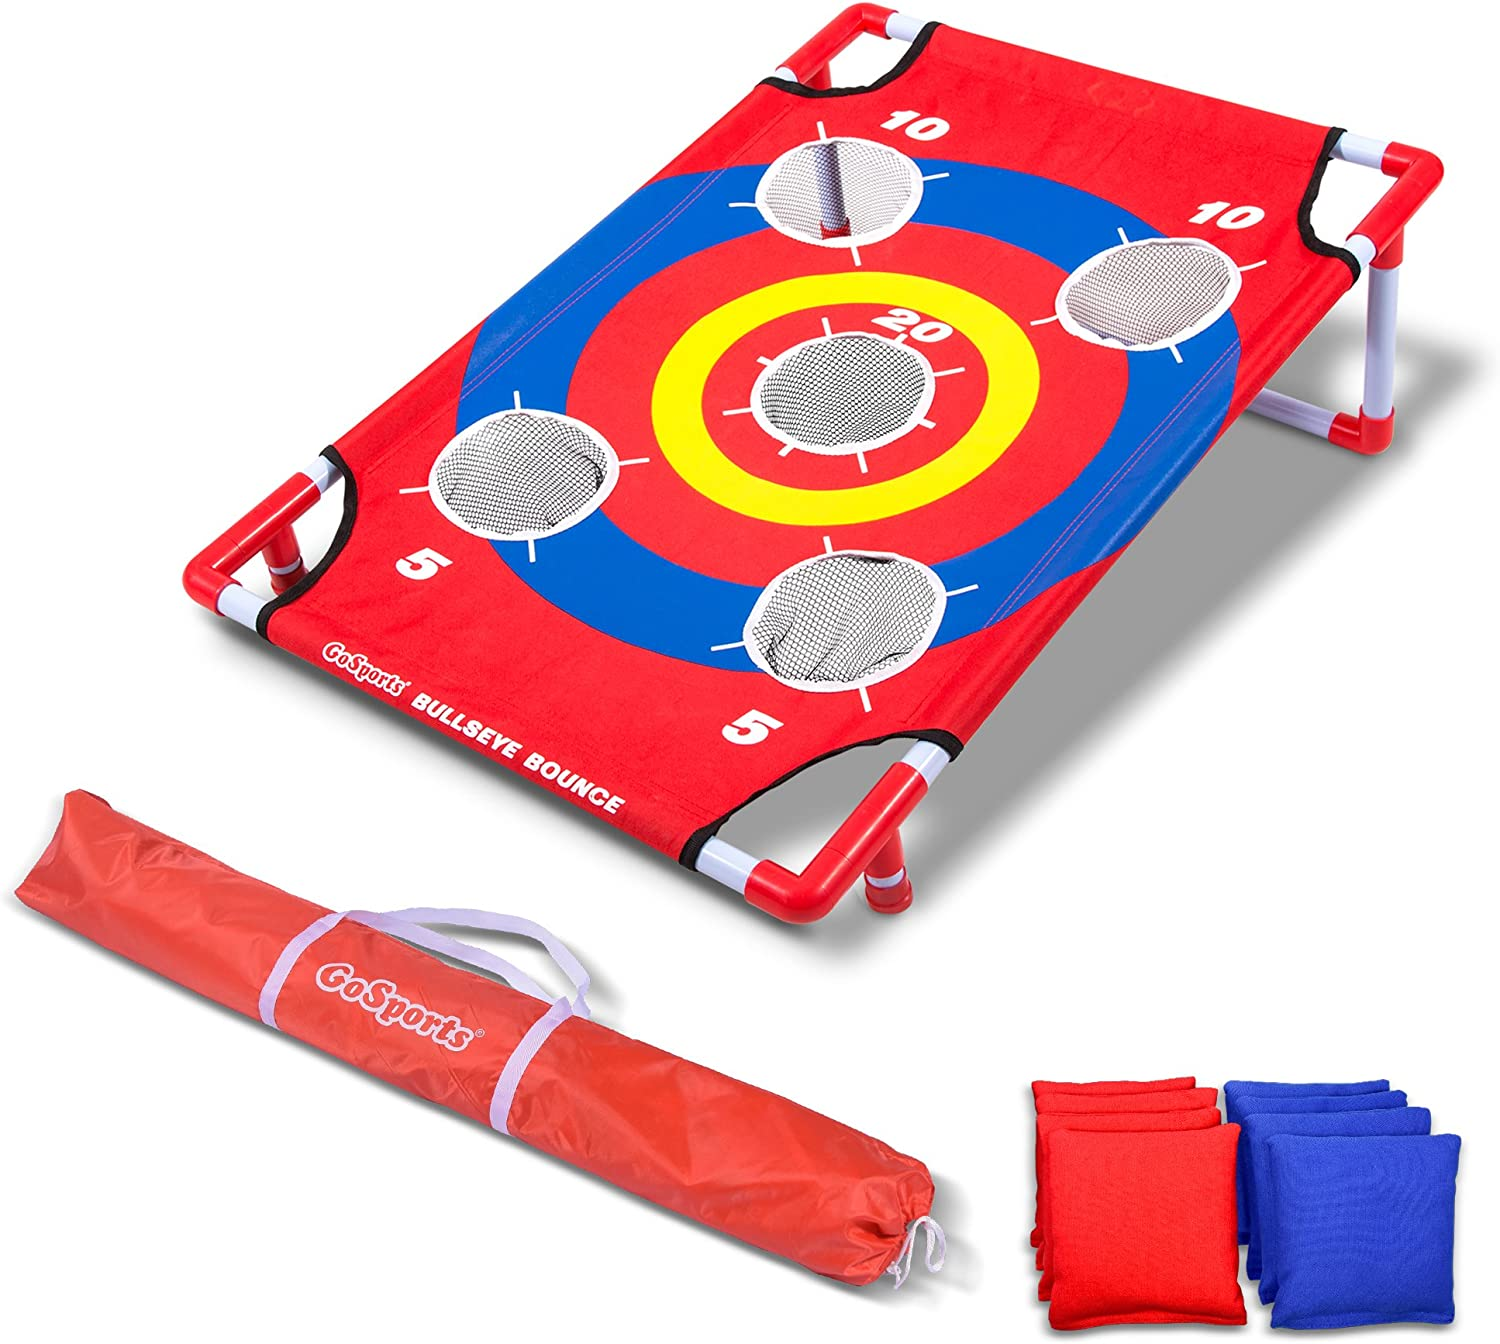 GoSports Bullseye Bounce & Tri Toss Cornhole Toss Games - Great for All Ages & Includes Fun Rules